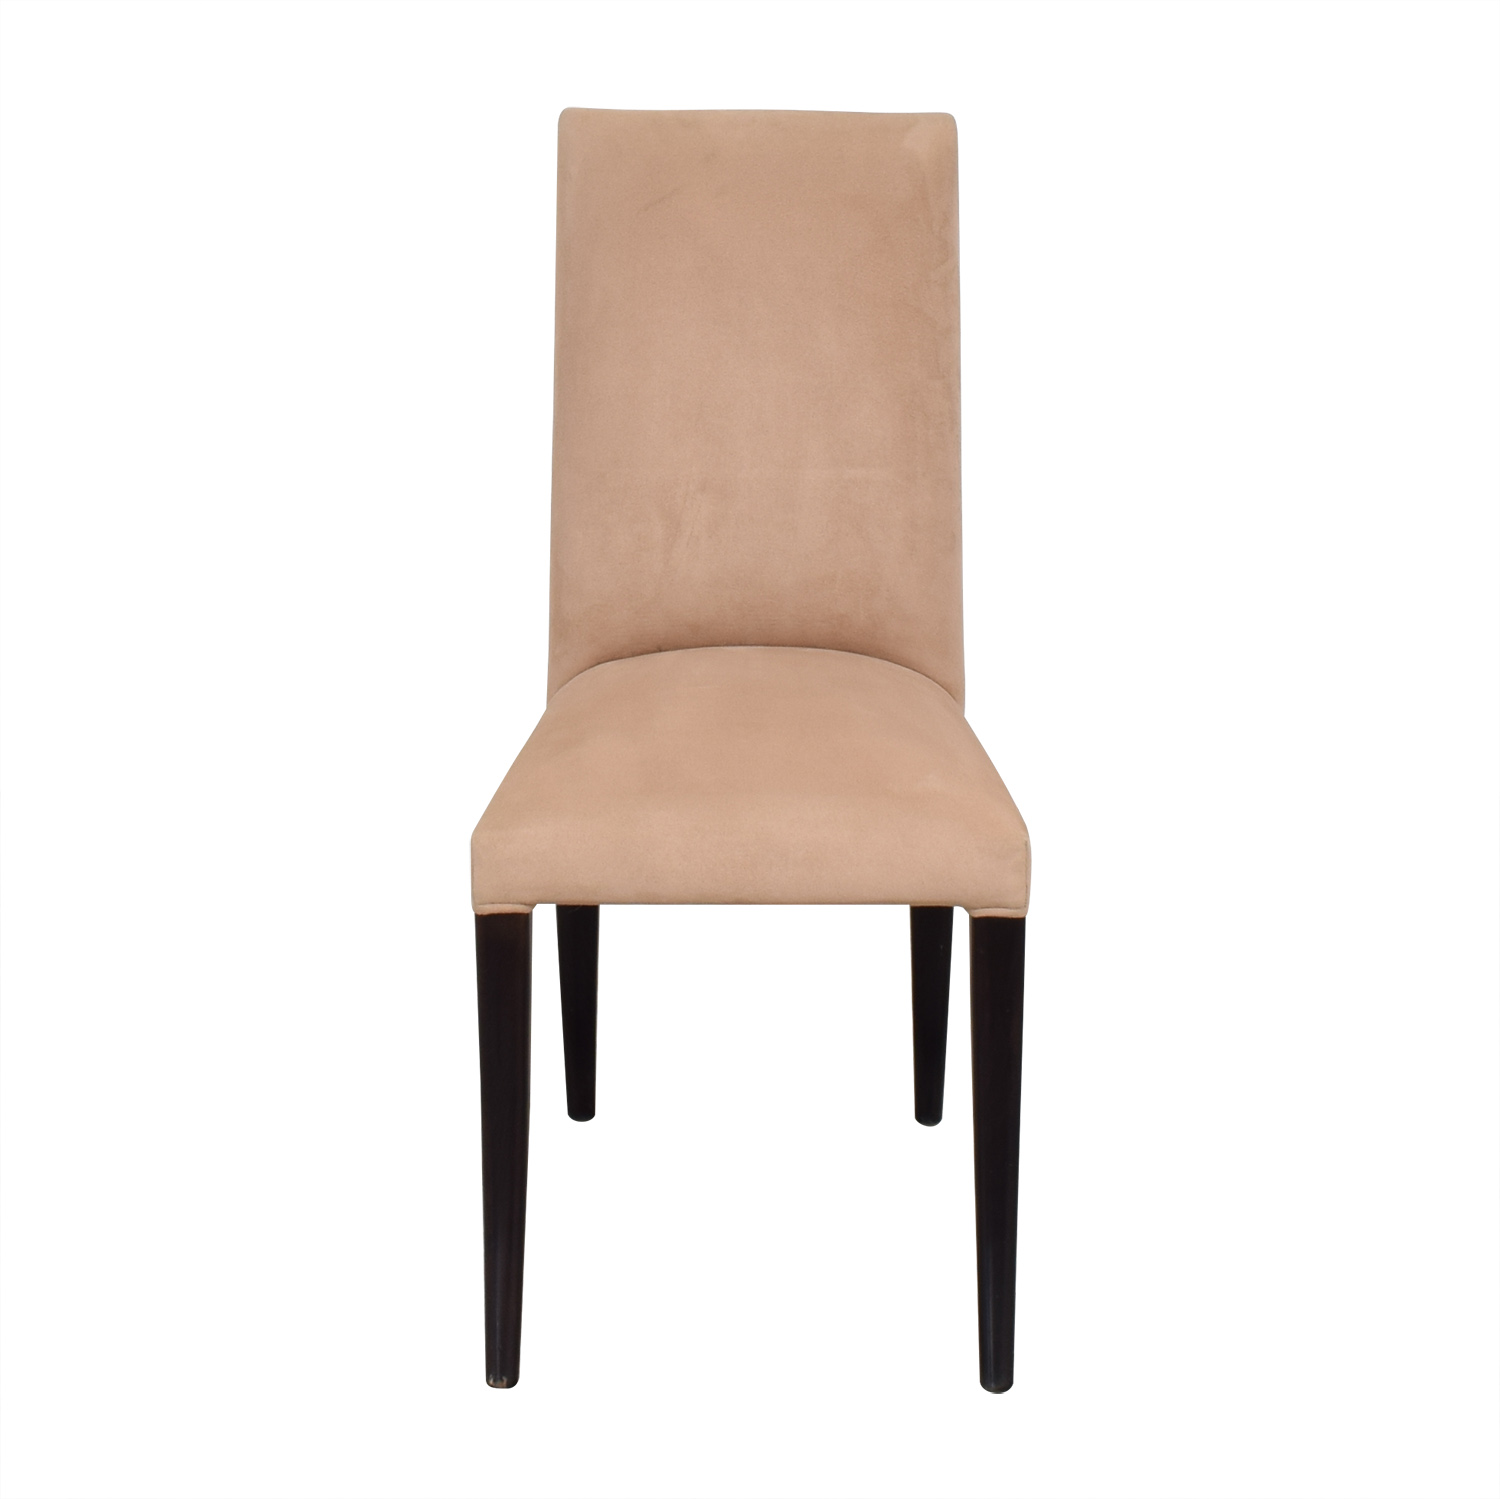 Upholstered Desk Chair ma